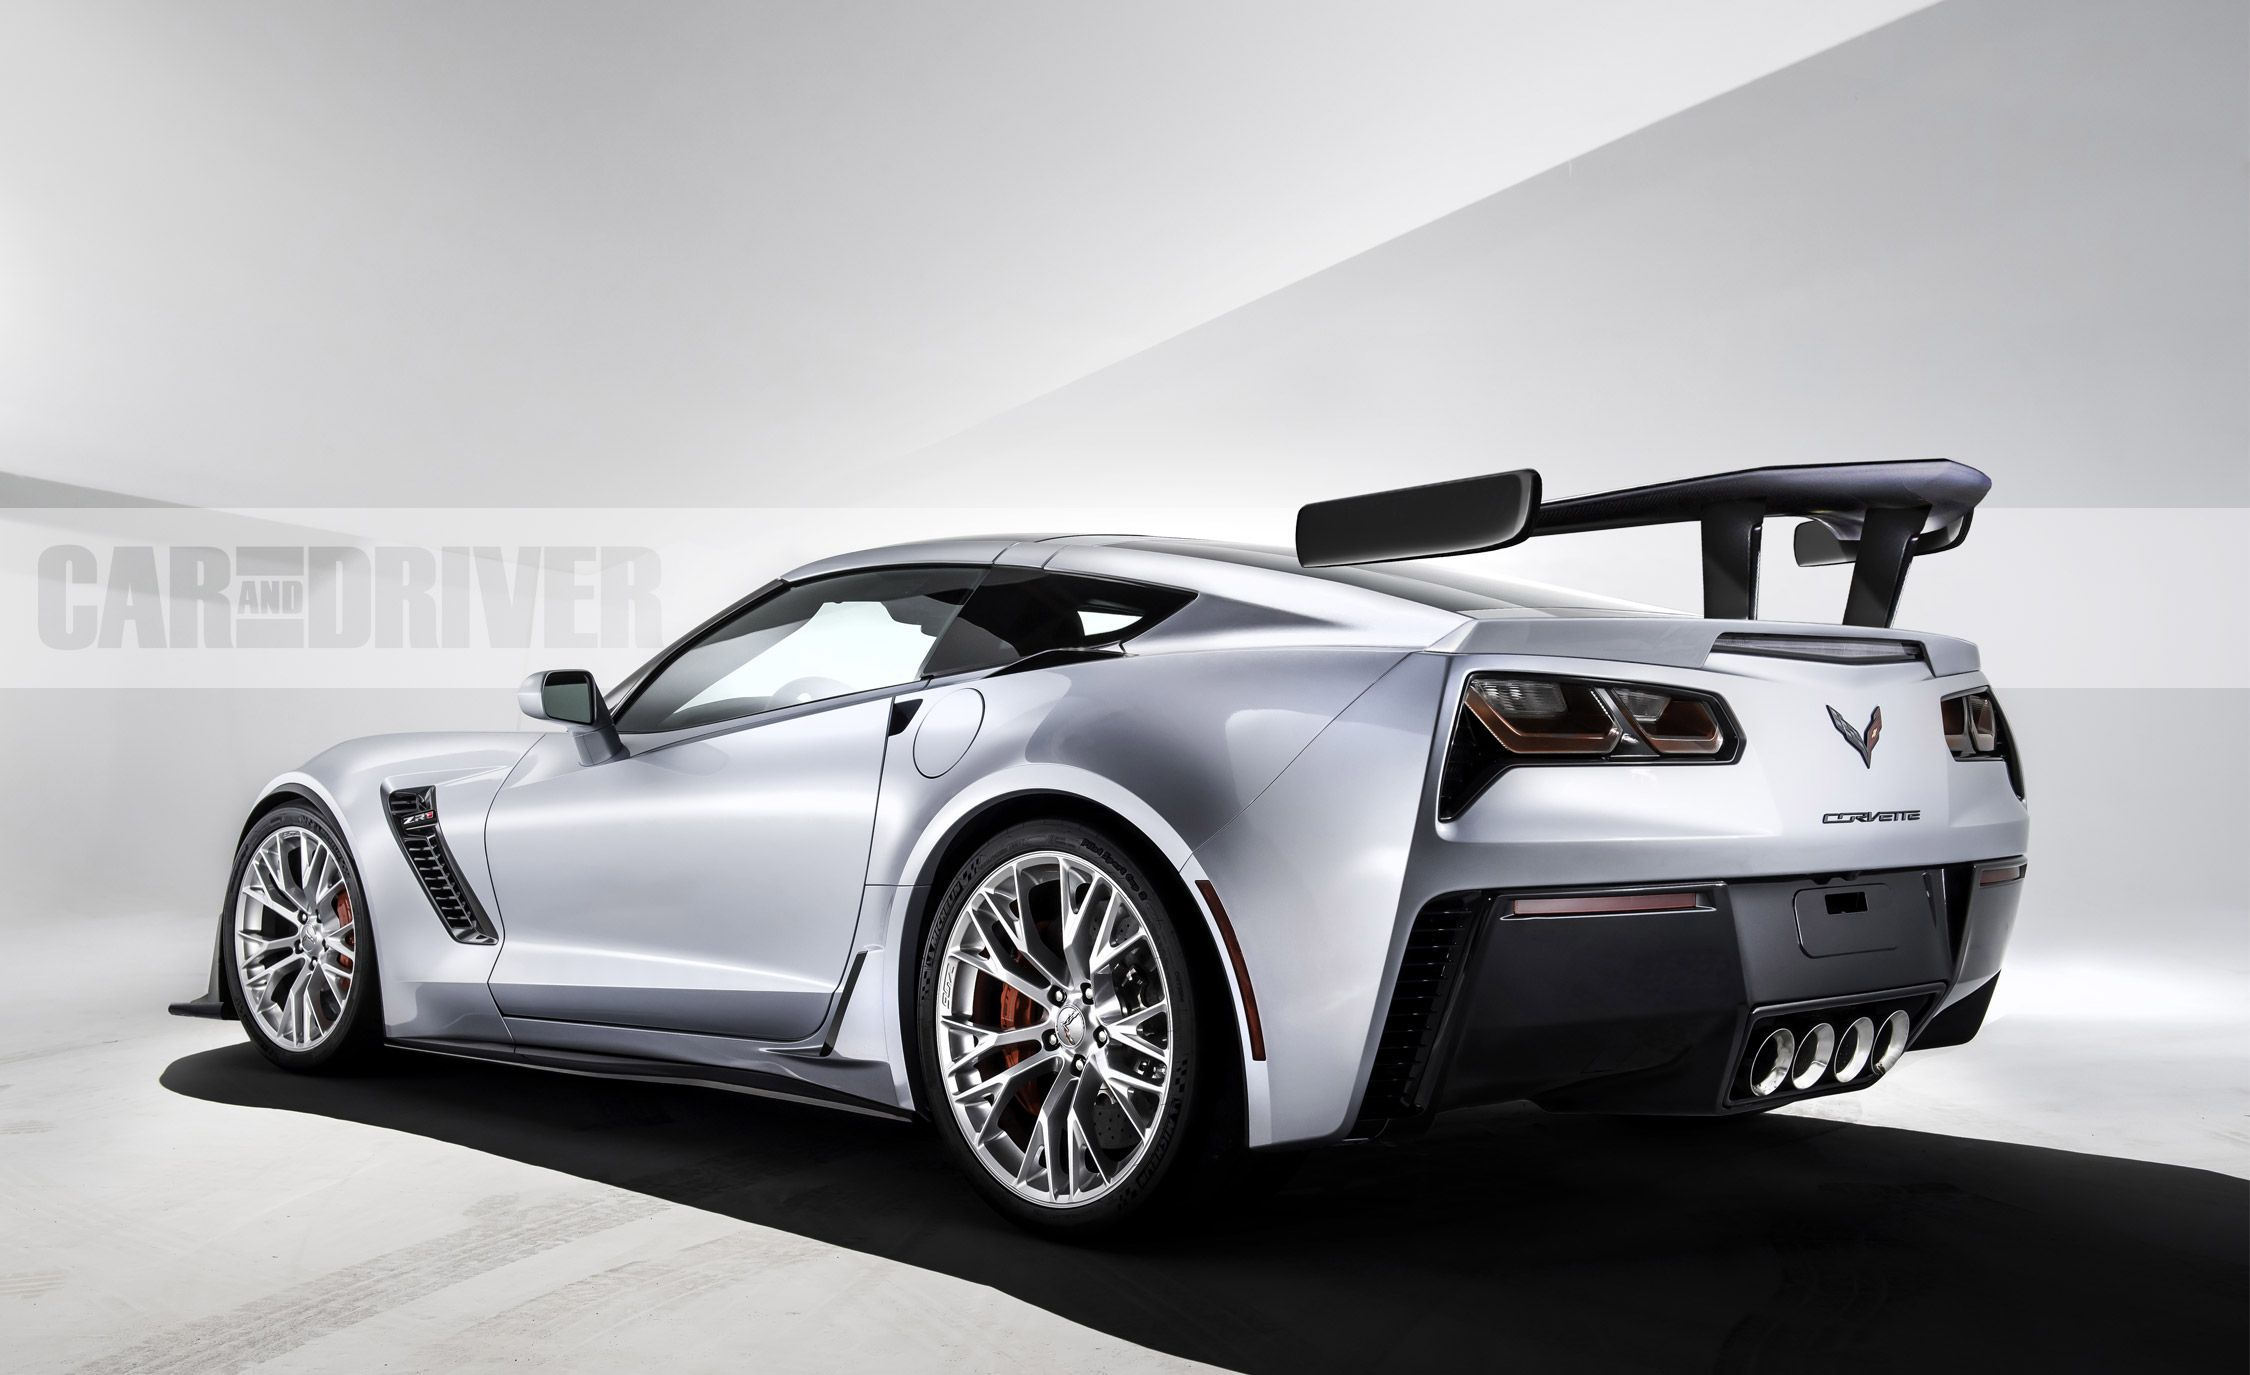 Chevy Corvette 2018 >> The 2019 Chevrolet Corvette ZR1 Is a Car Worth Waiting For | Feature | Car and Driver